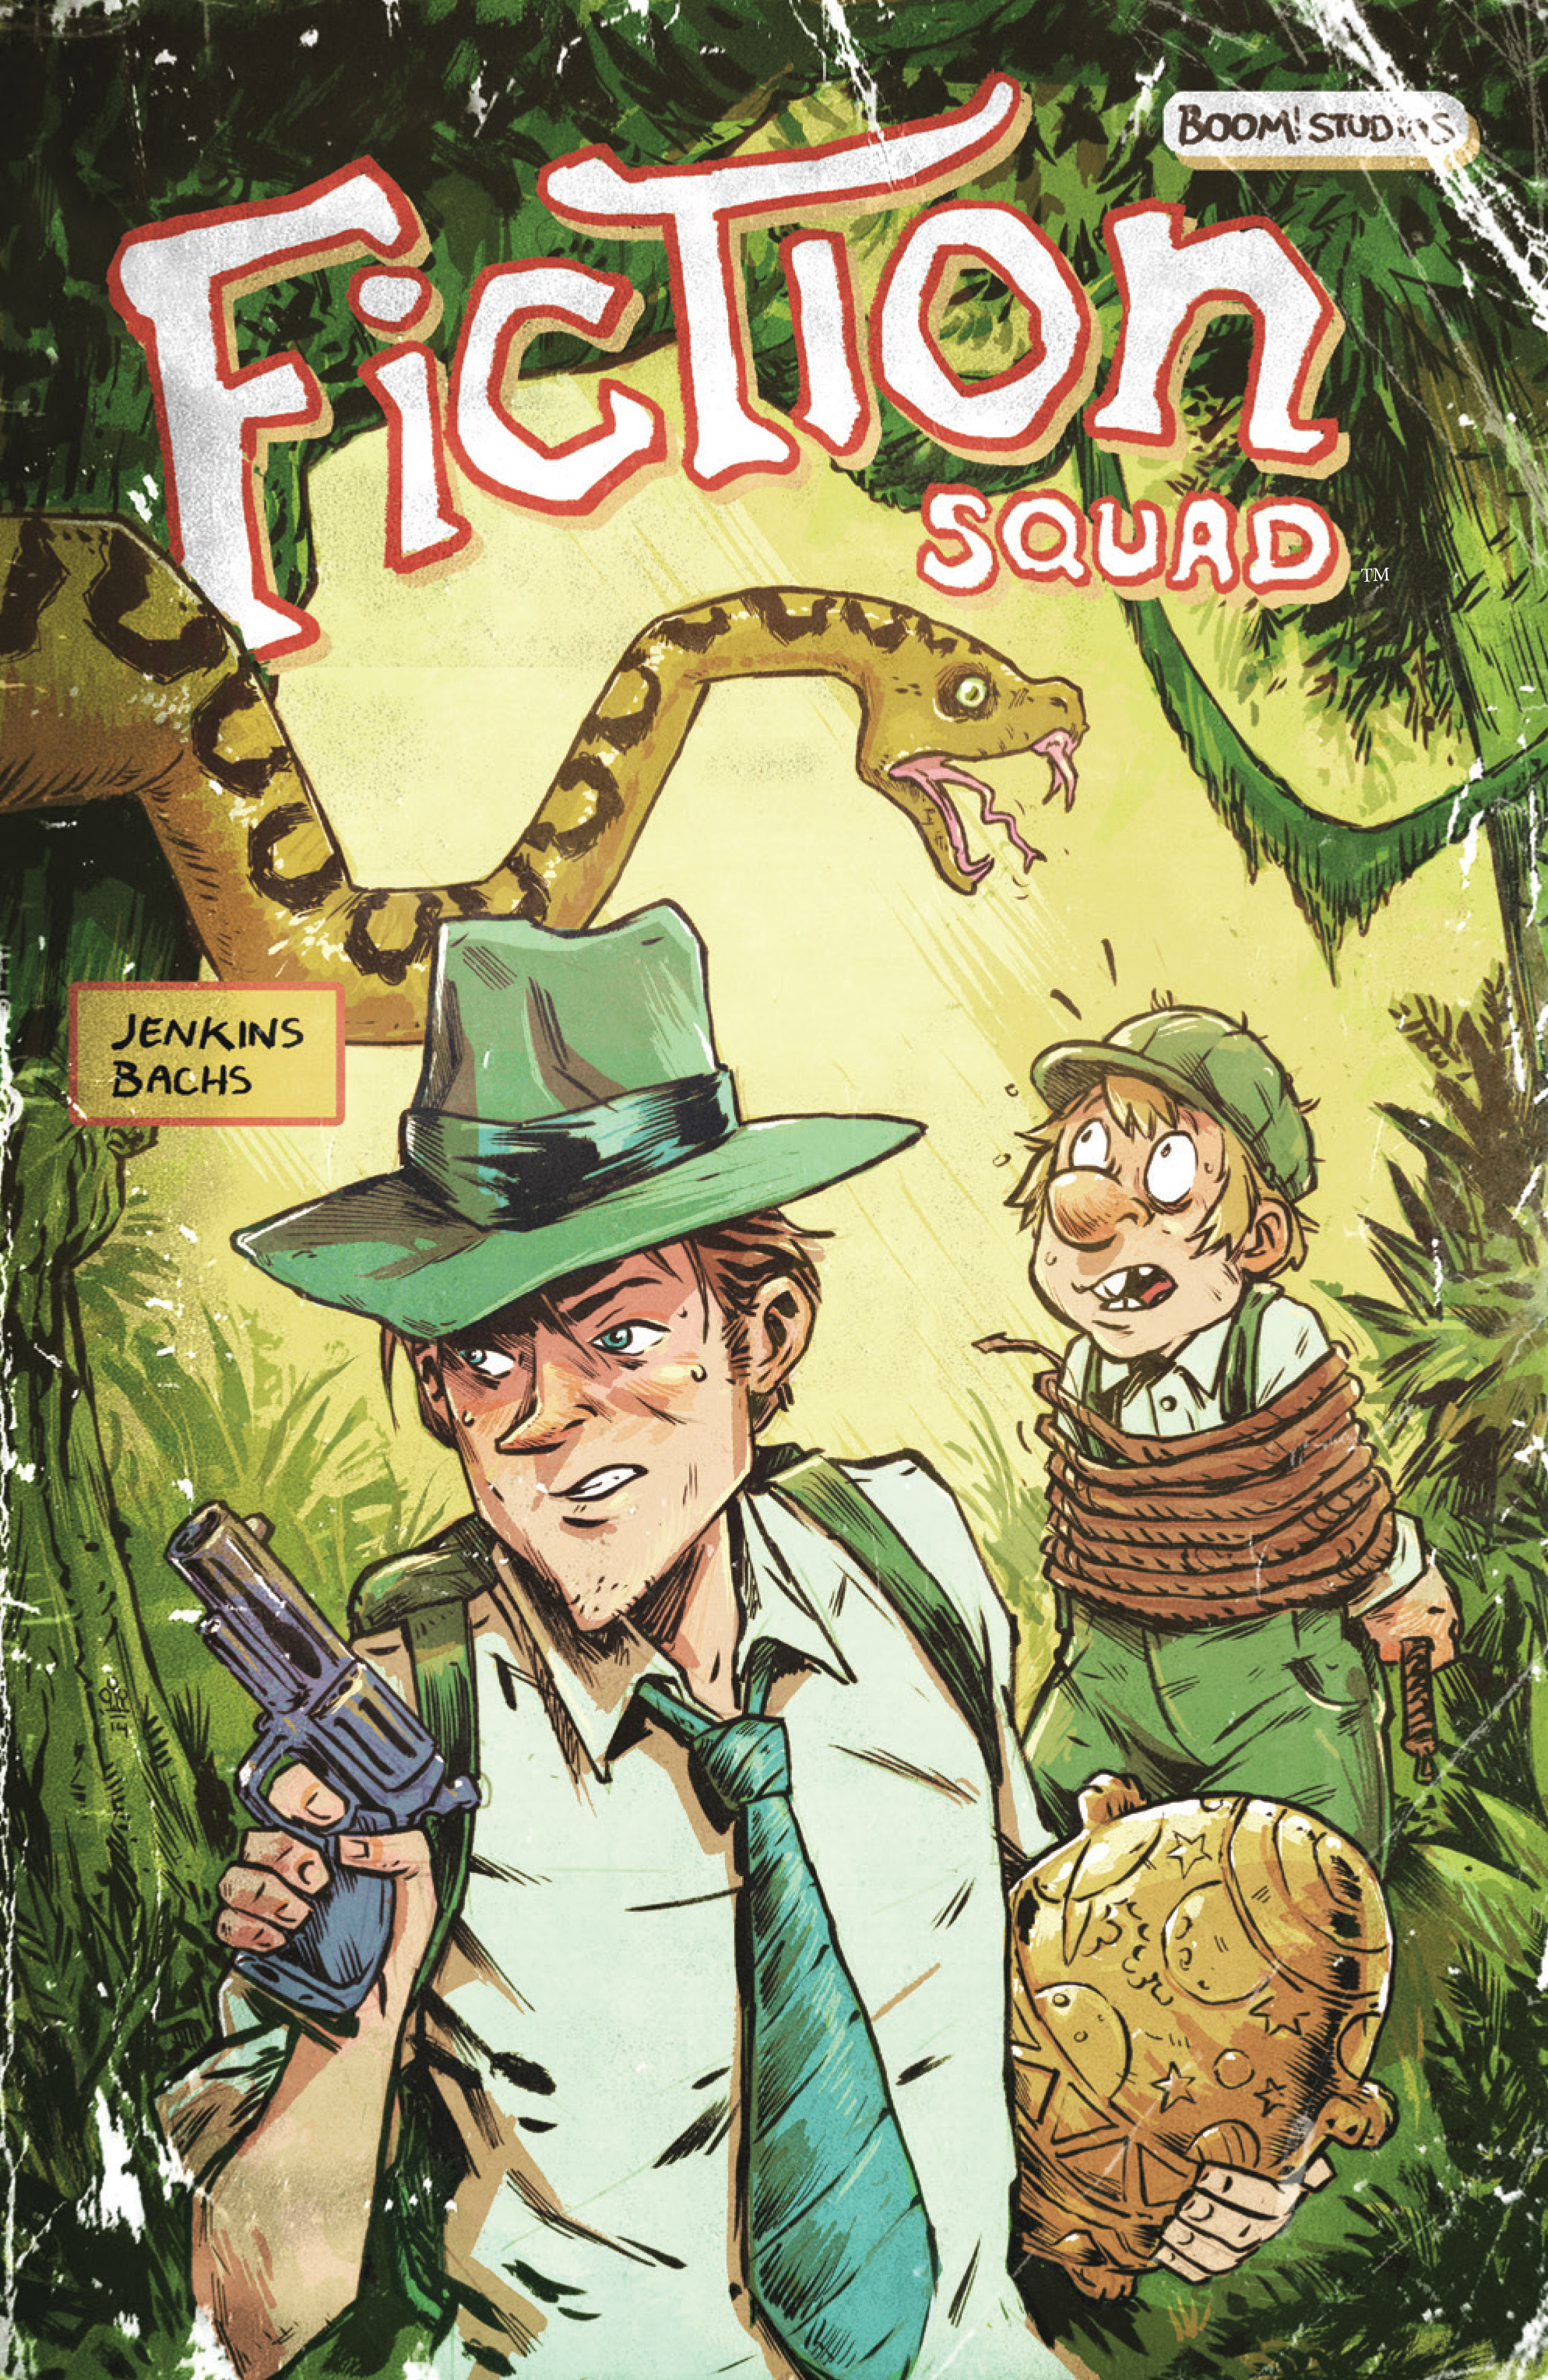 Read online Fiction Squad comic -  Issue #5 - 2